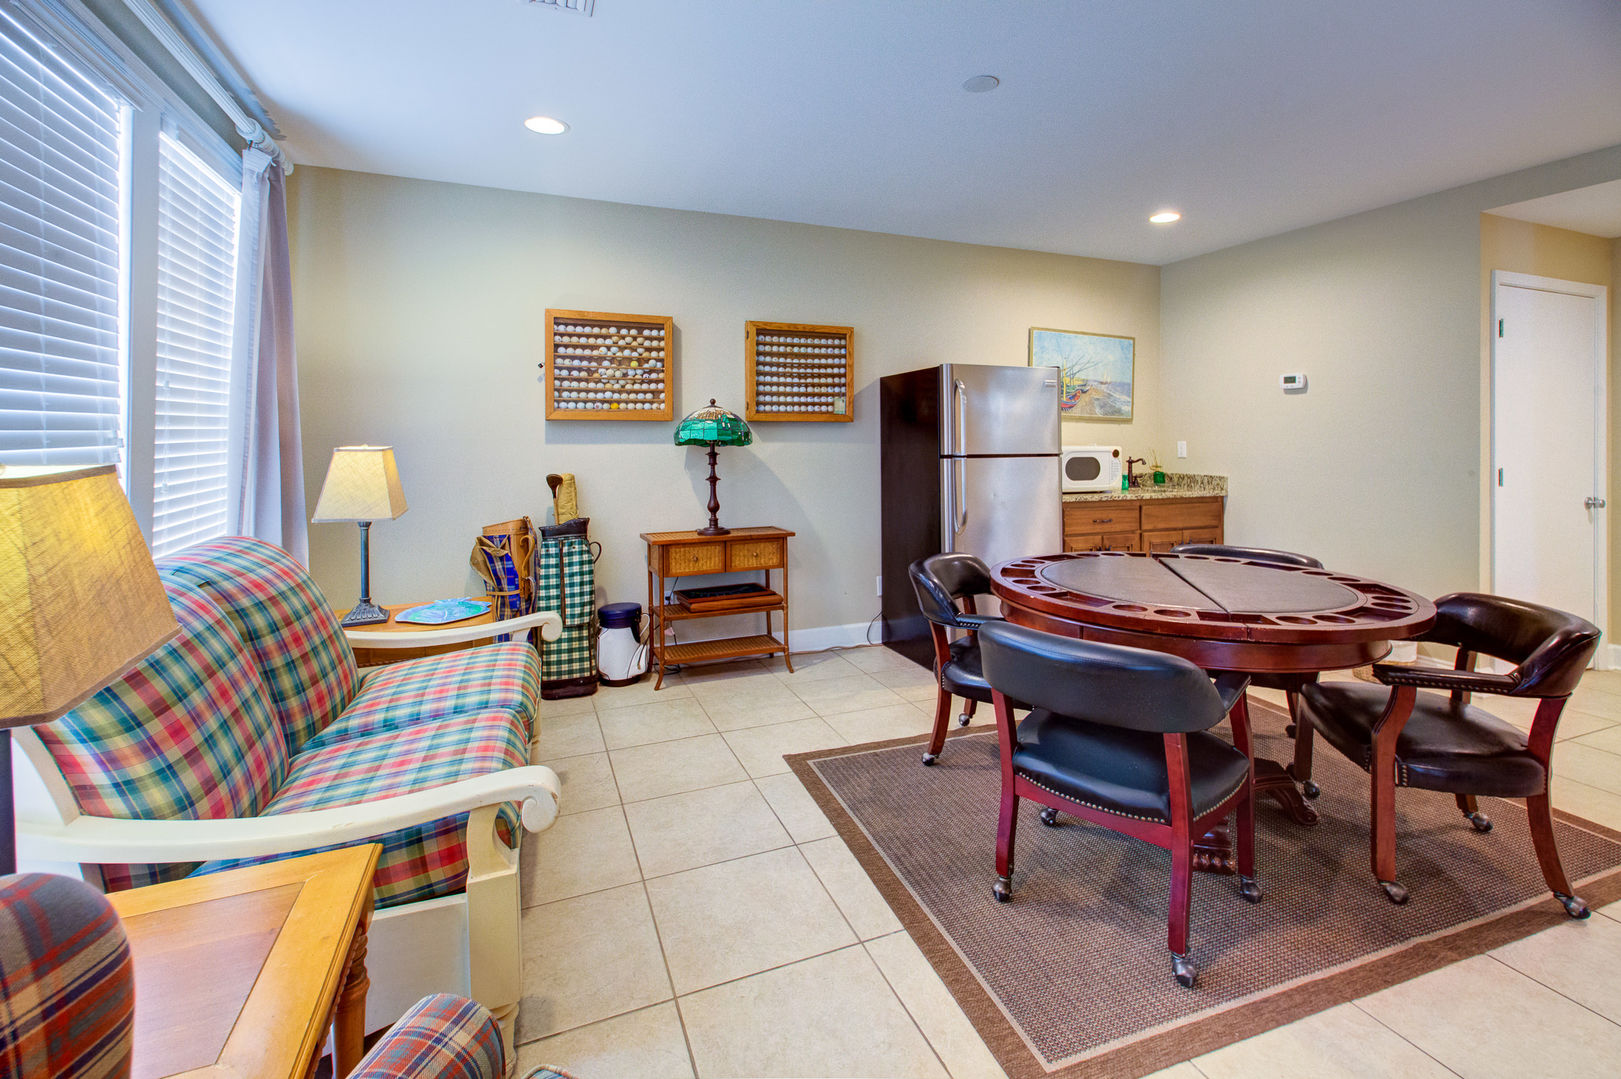 Sofa, Side Tables, Lamps, Poker Table, Refrigerator, and Wet Bar.